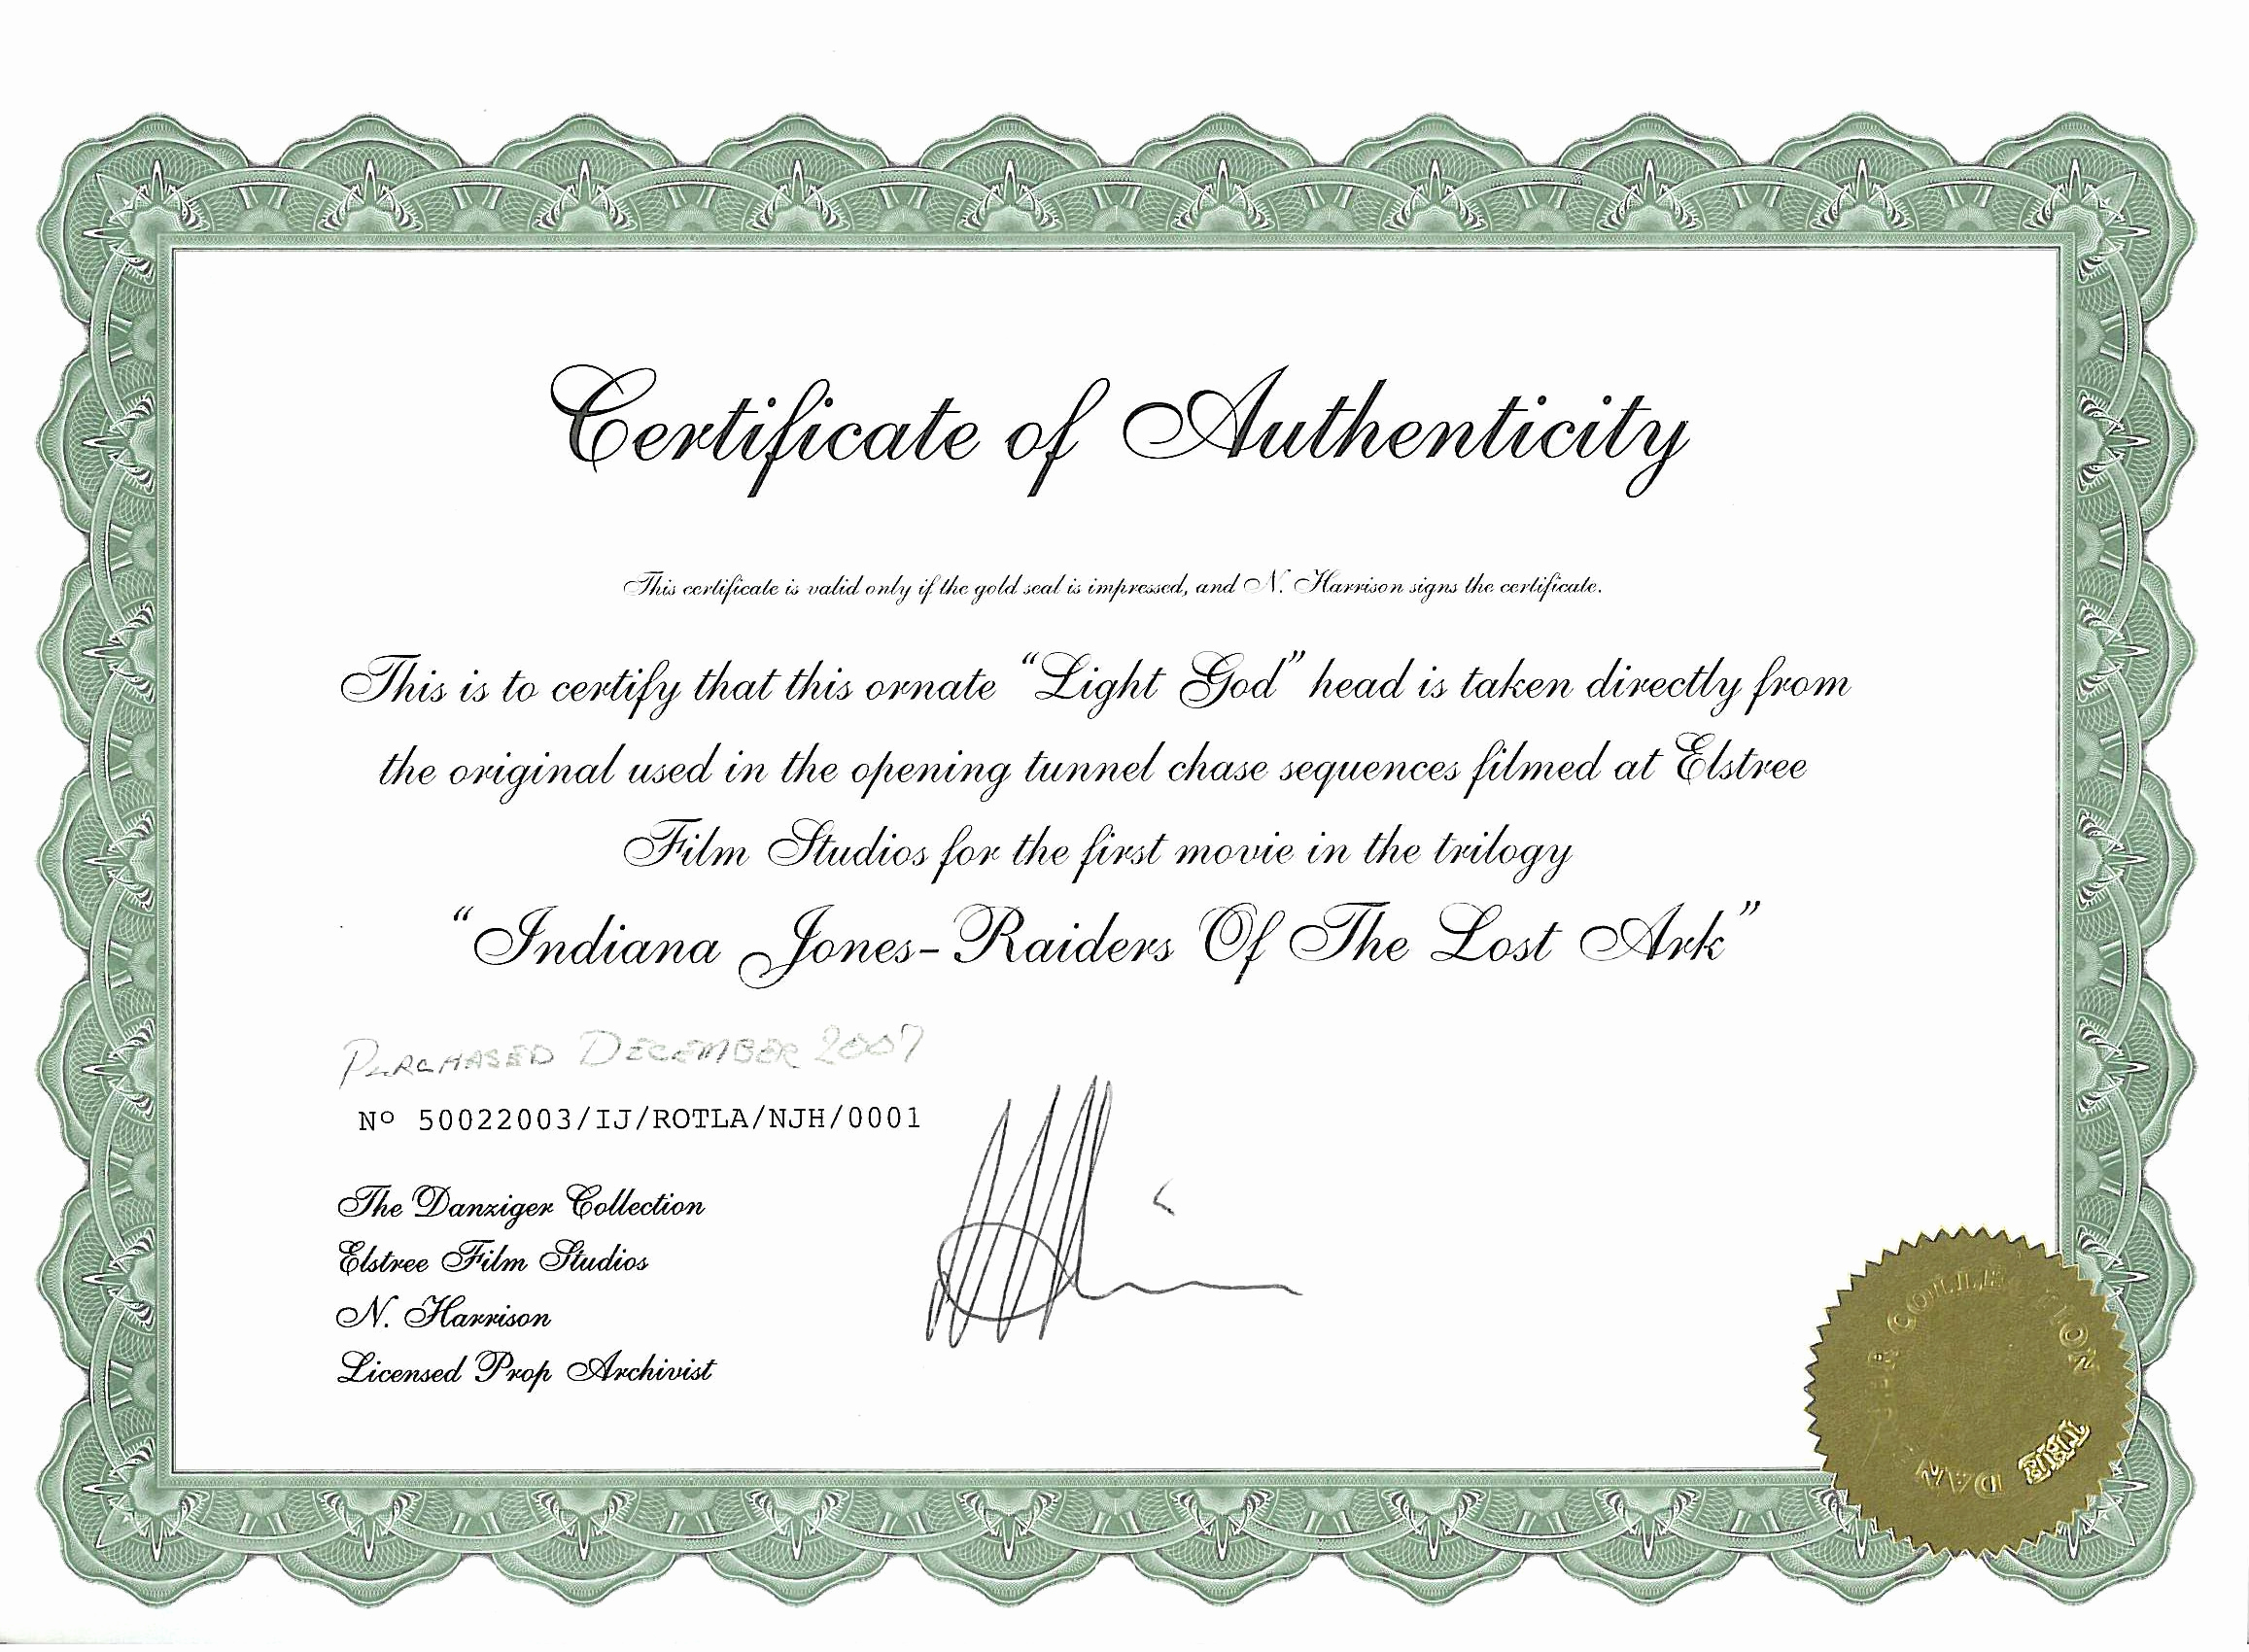 Certificate Of Authenticity Photography Template Fresh Elstree Props Fertility Idols Light Gods Danziger